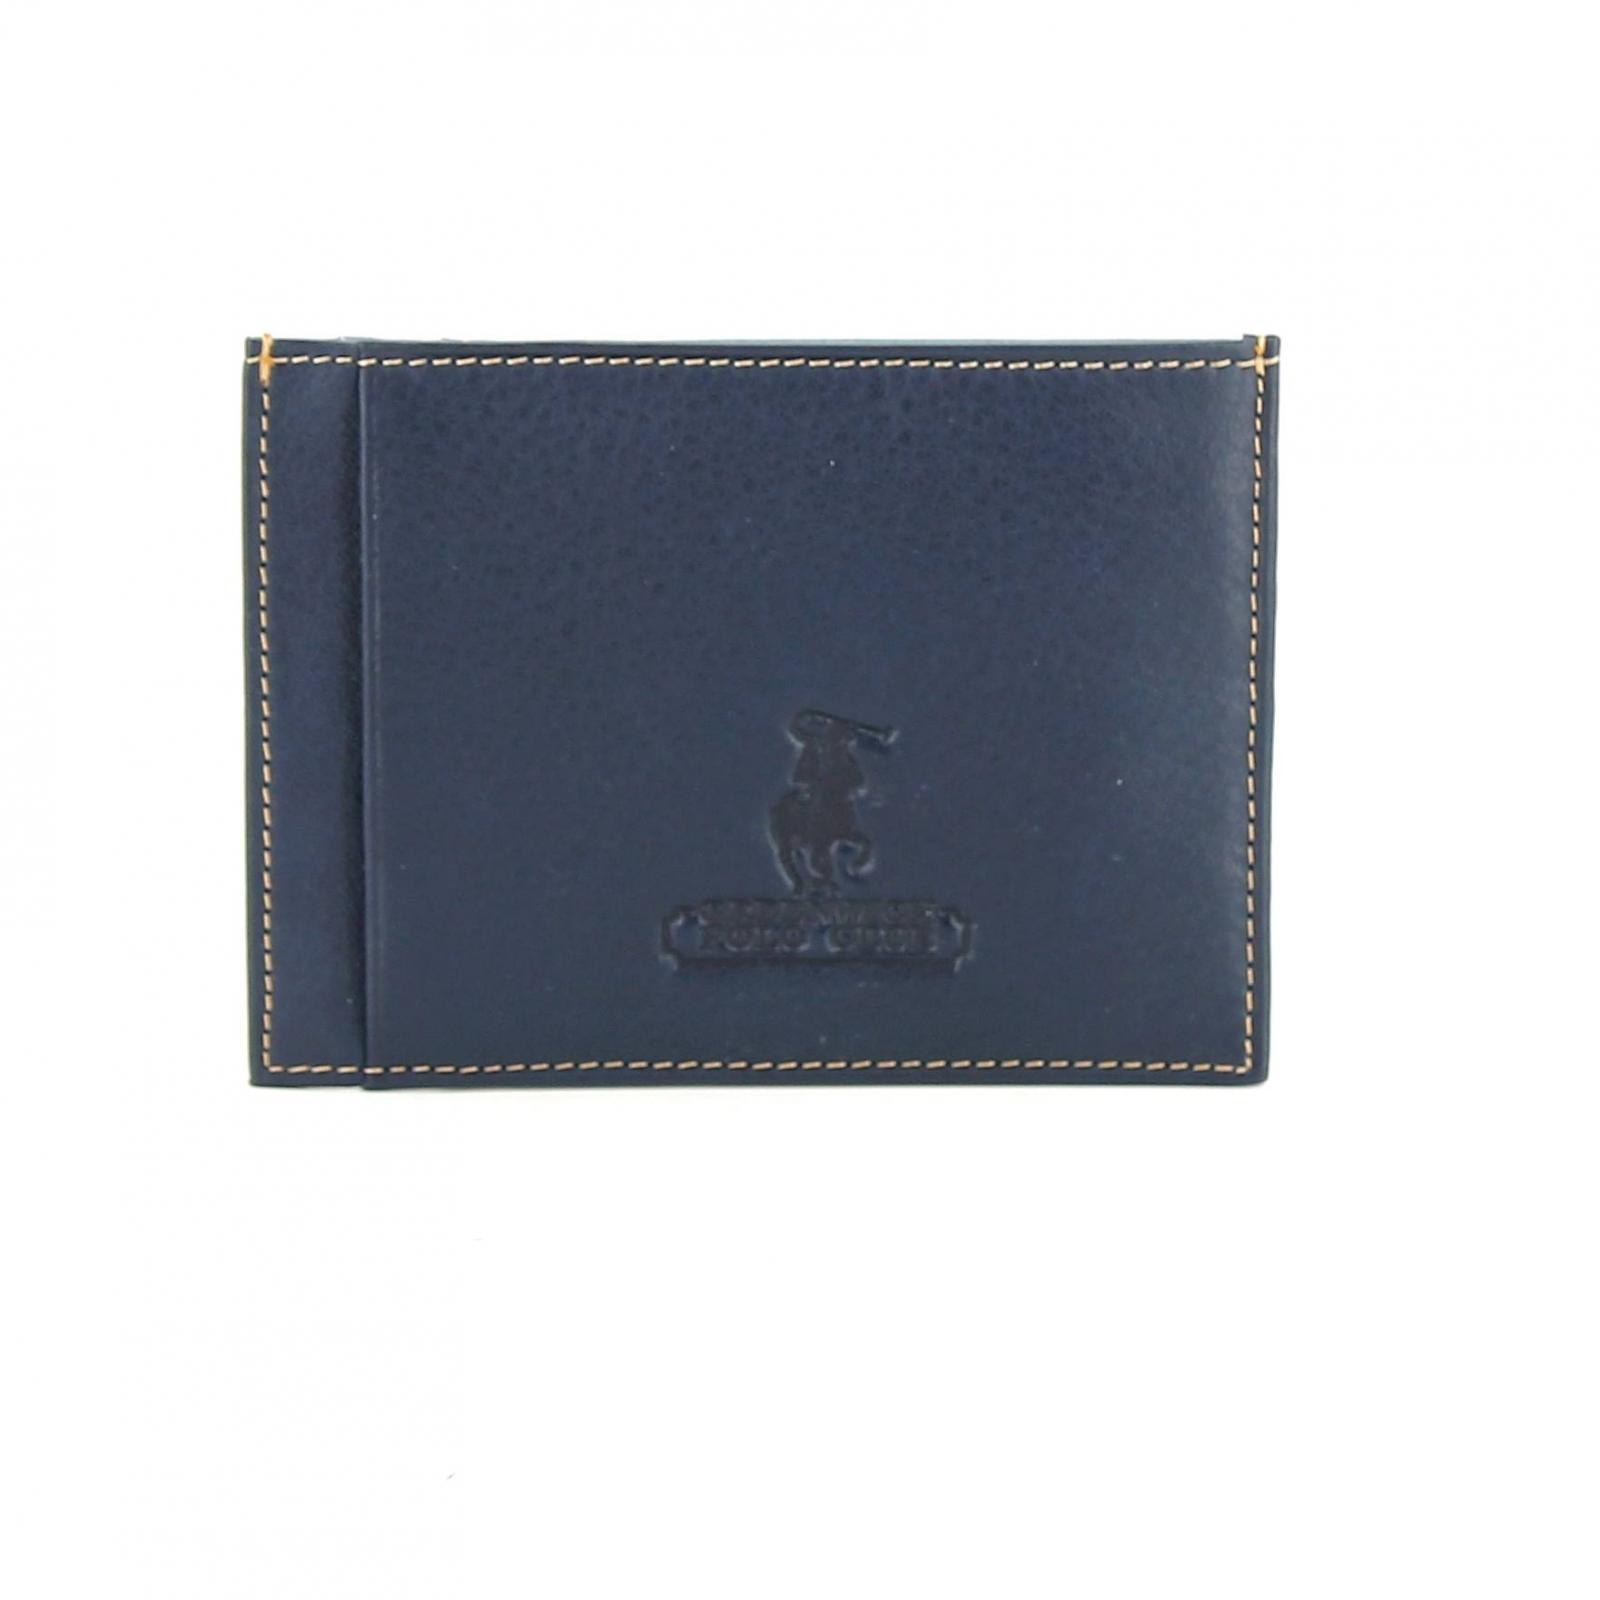 Document holder 08910 Polo